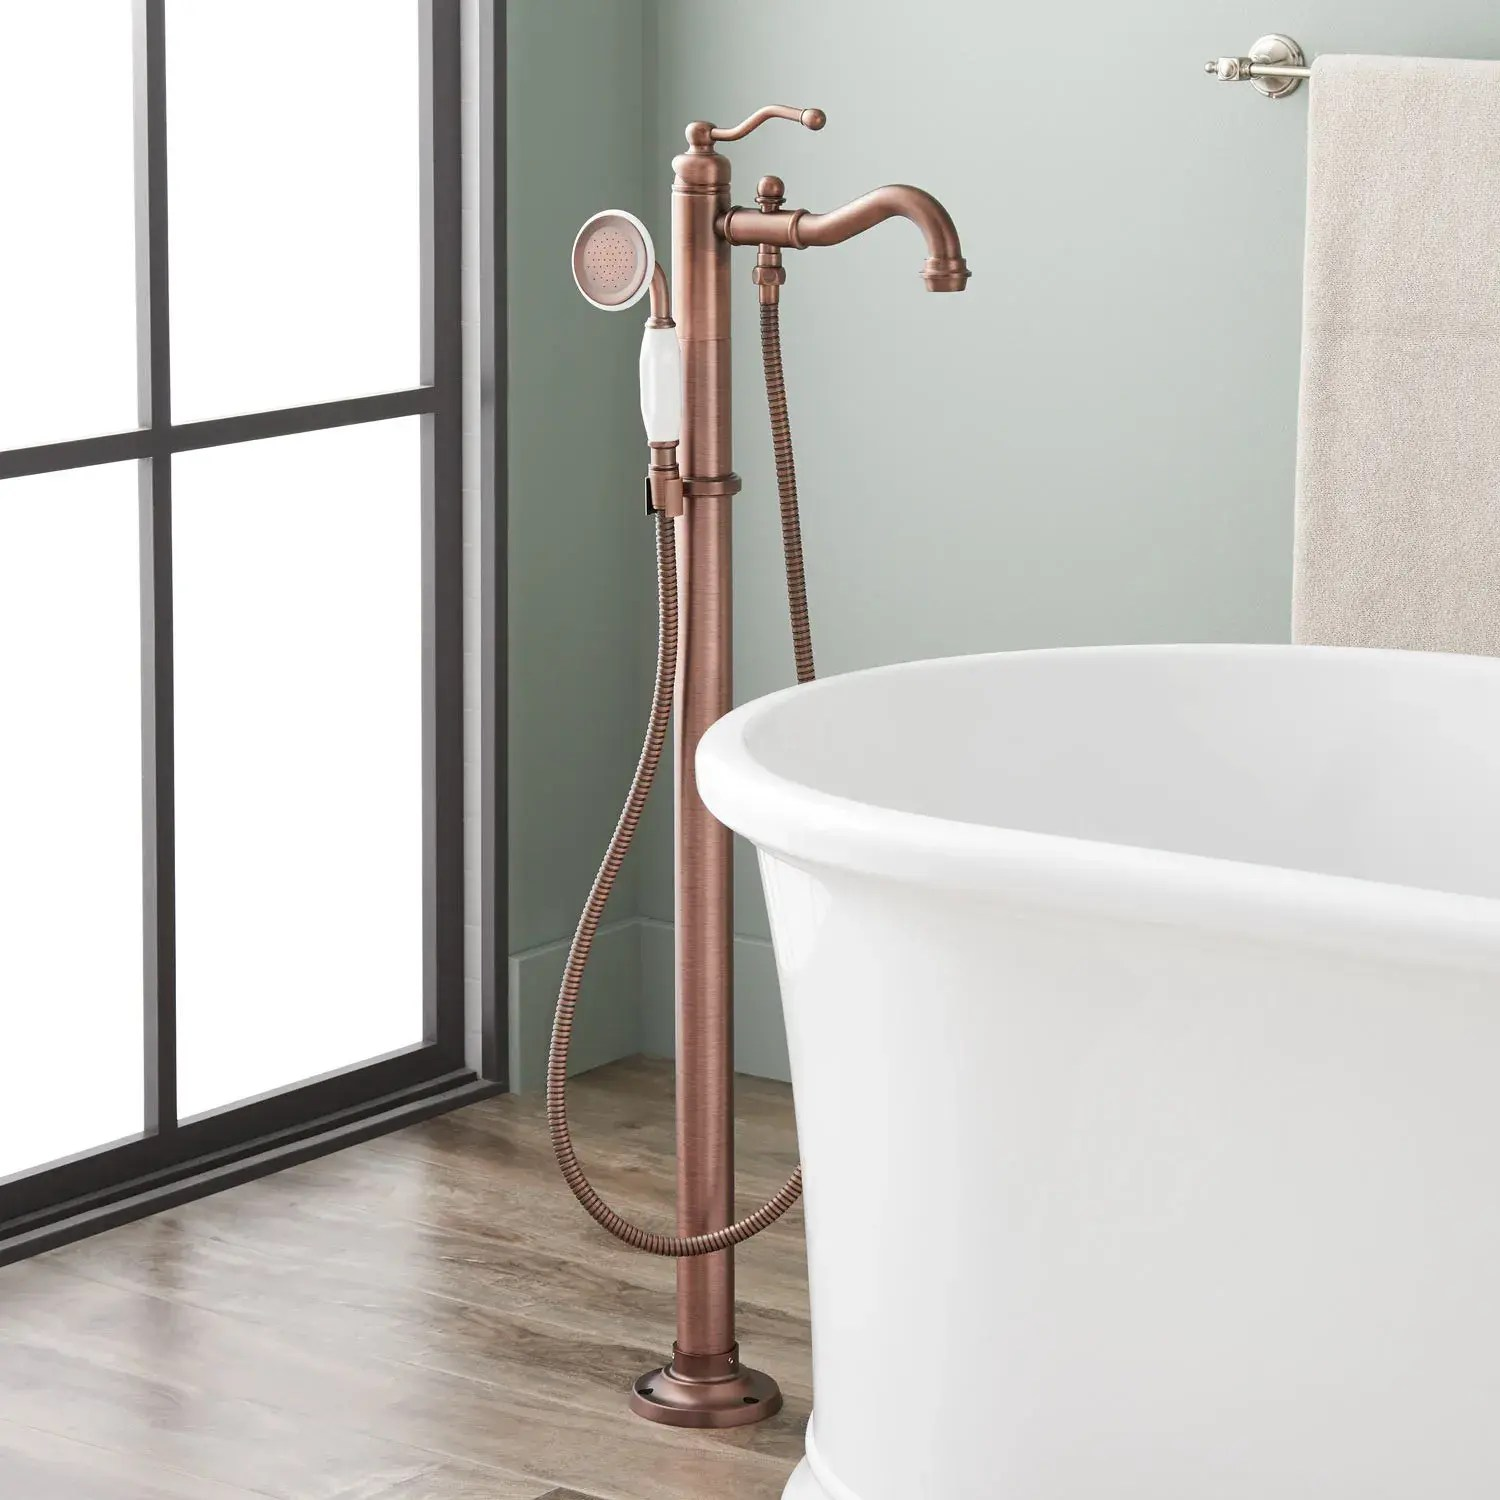 leta freestanding tub faucet with hand shower